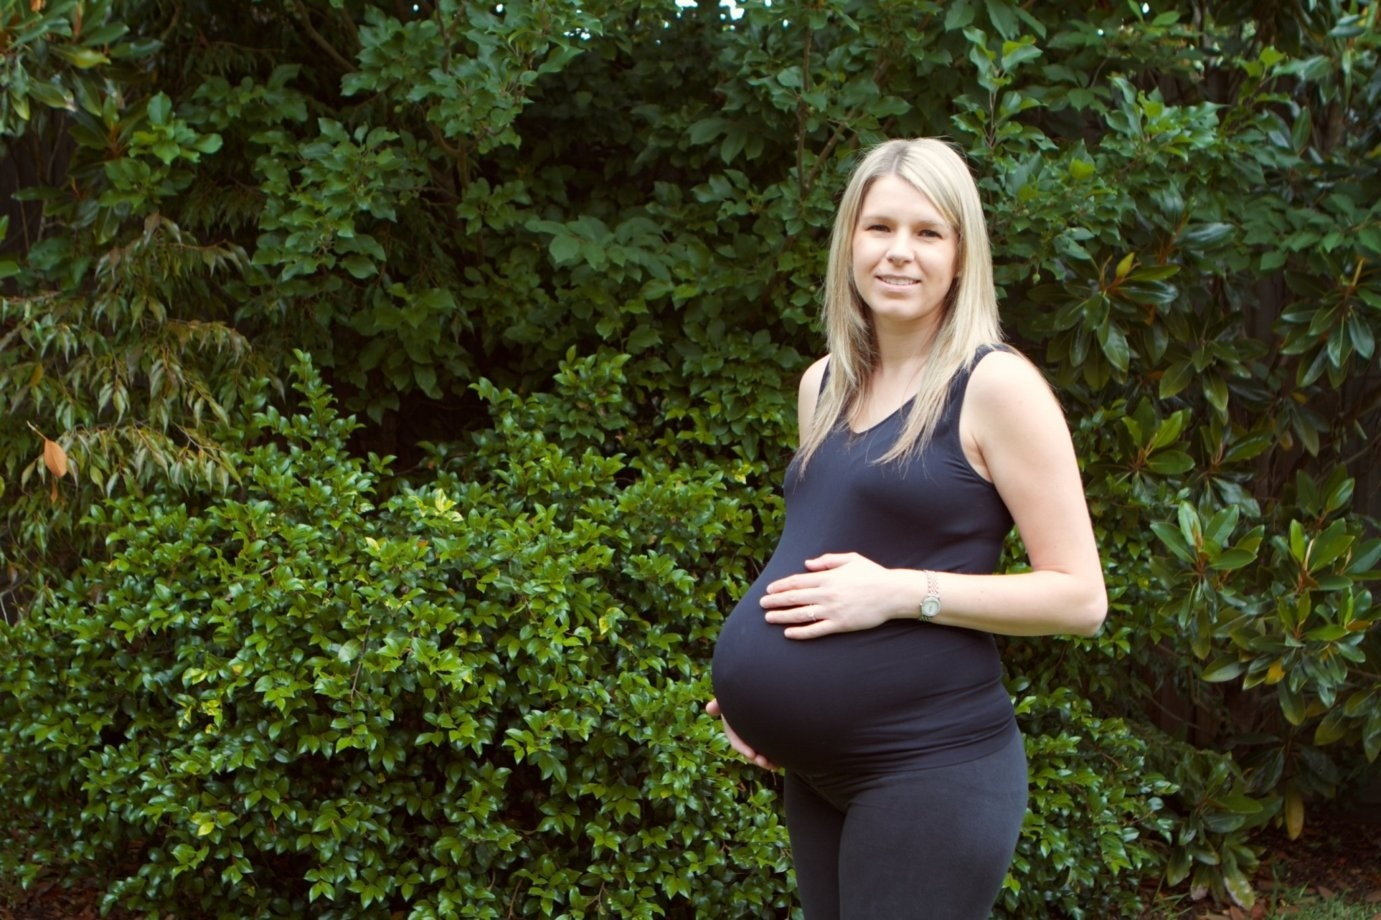 The PregActive Workouts Were Excellent for Me during My Pregnancy